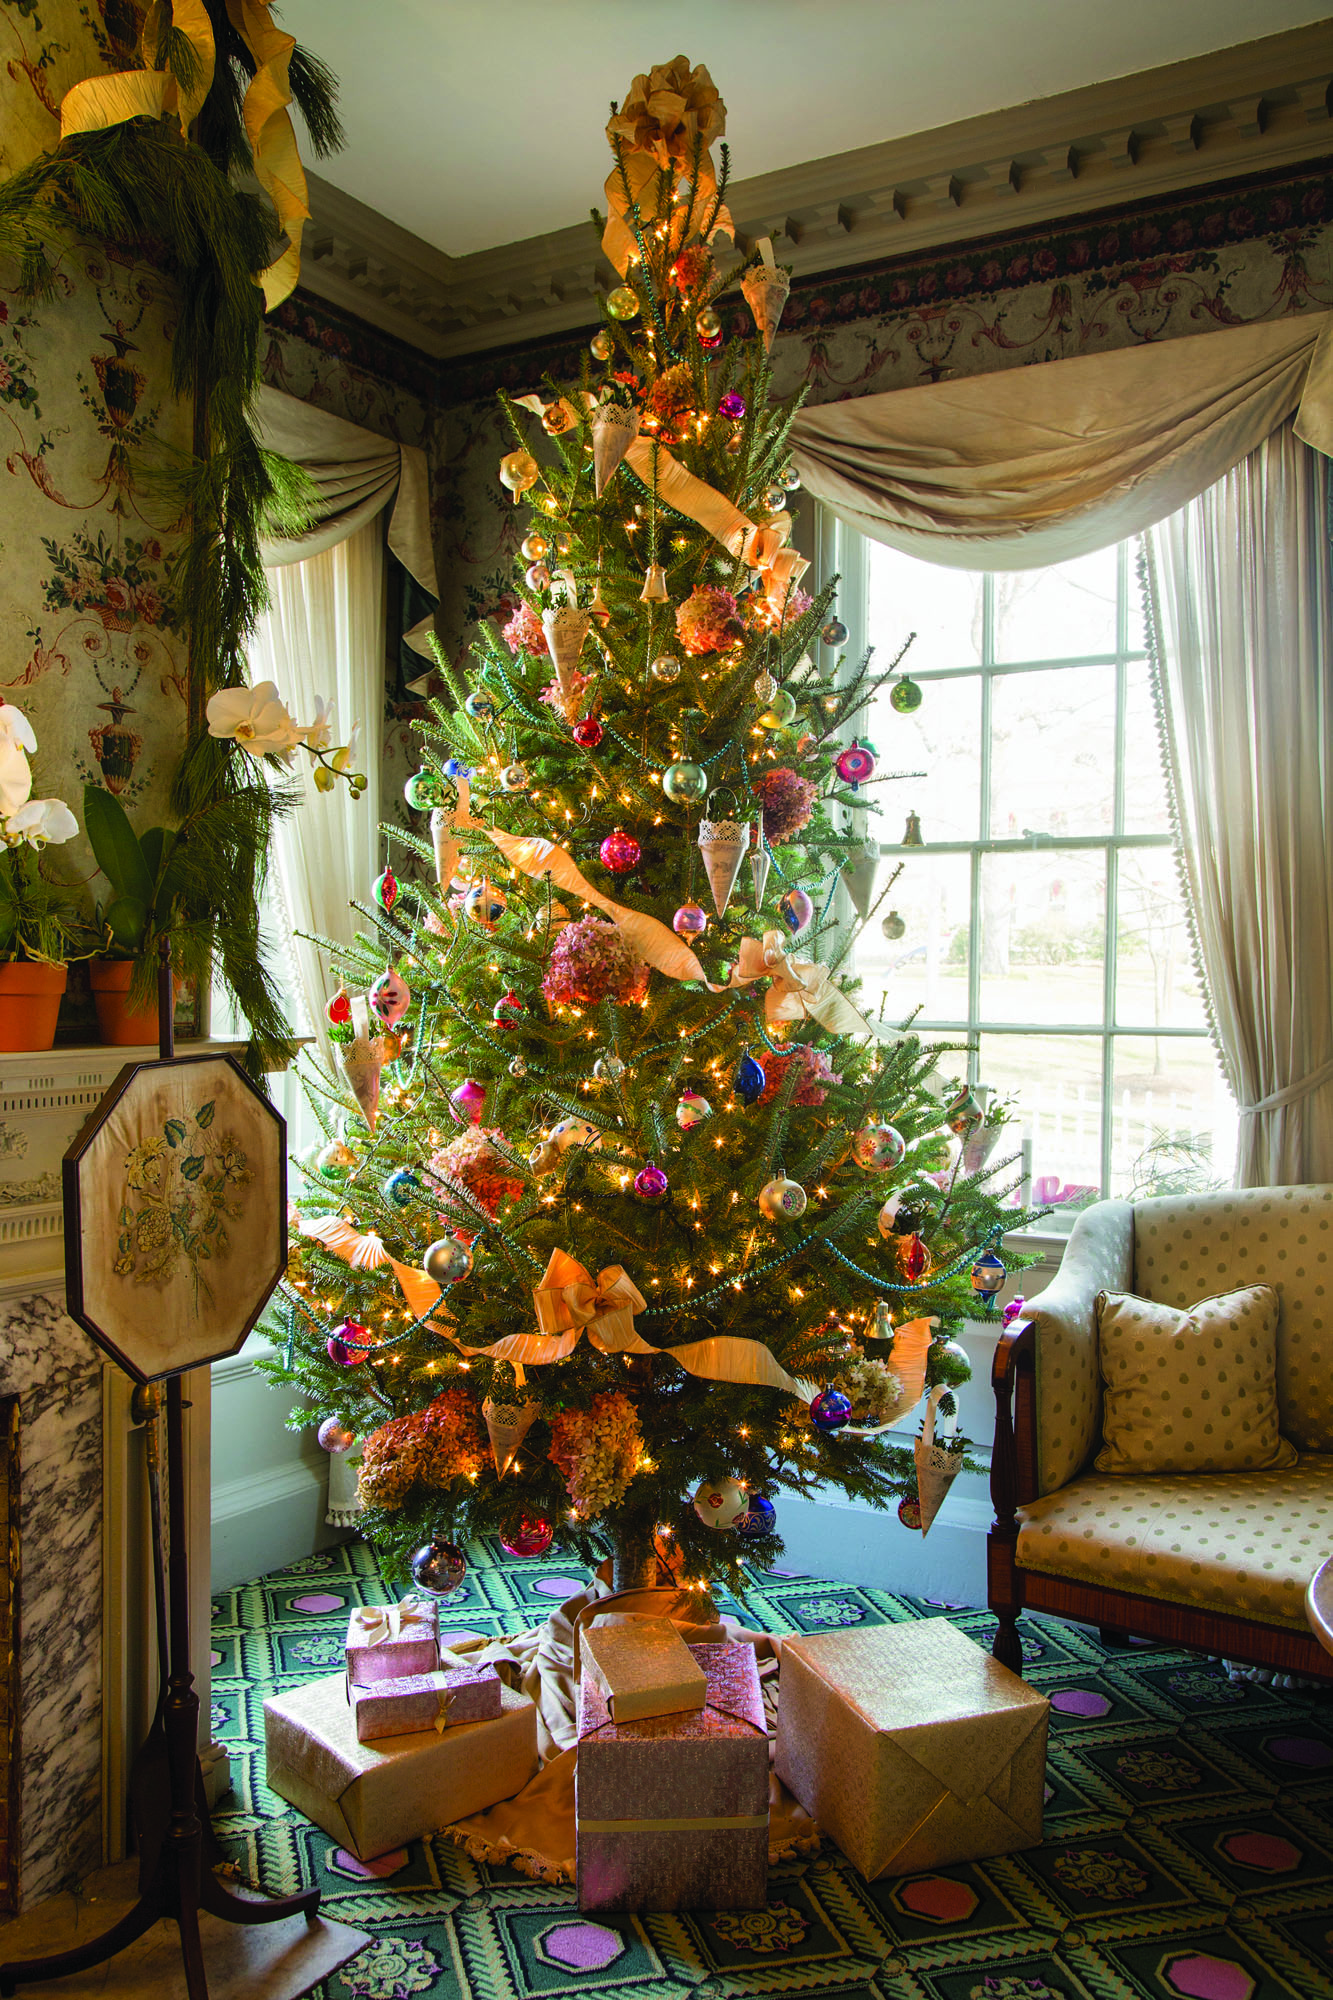 The tree in the formal Phelps parlor is decorated as it might have been in the late 19th century, set with ornaments belonging to Harrison's grandmother-in-law. True Victorian gems on the tree include the glass beads. The Christmas cones were made from heavy replica Victorian wrapping paper, cotton lace, and satin ribbon.